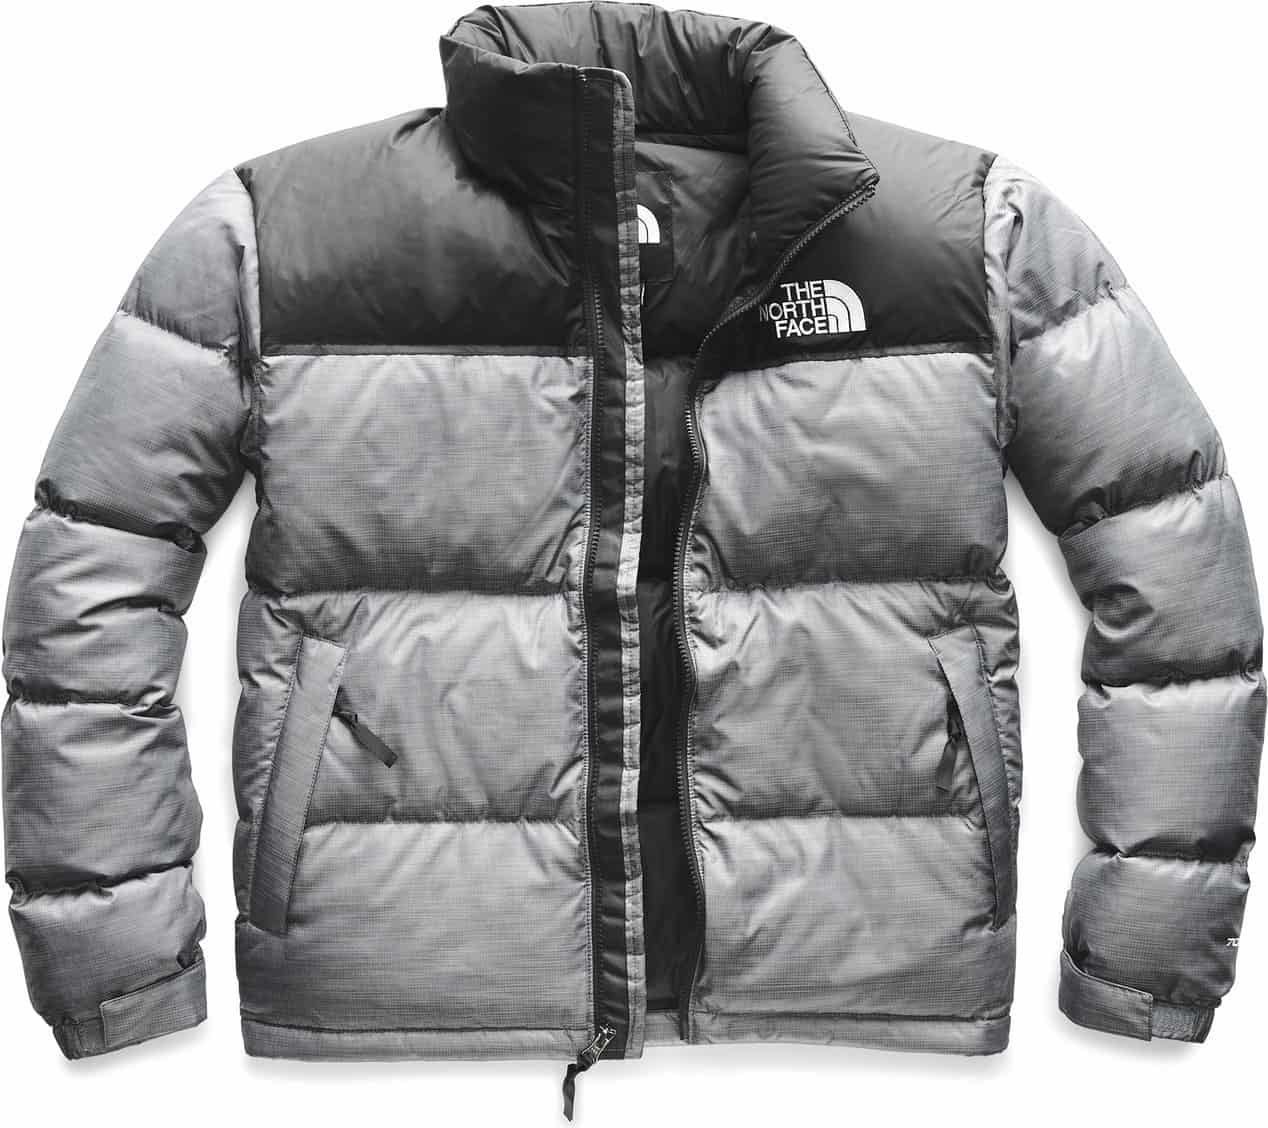 The North Face Brings Back the 90 s with the Nuptse Collection dd44489e2